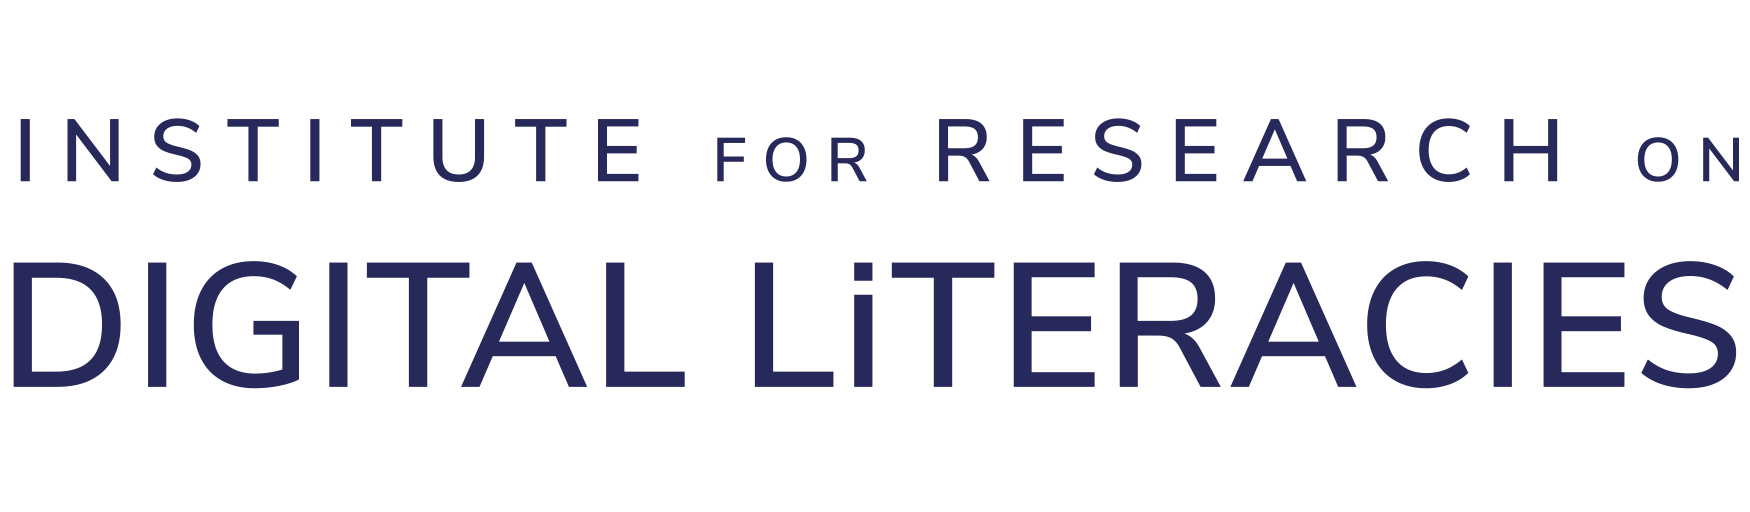 Institute for Research on Digital Literacies header